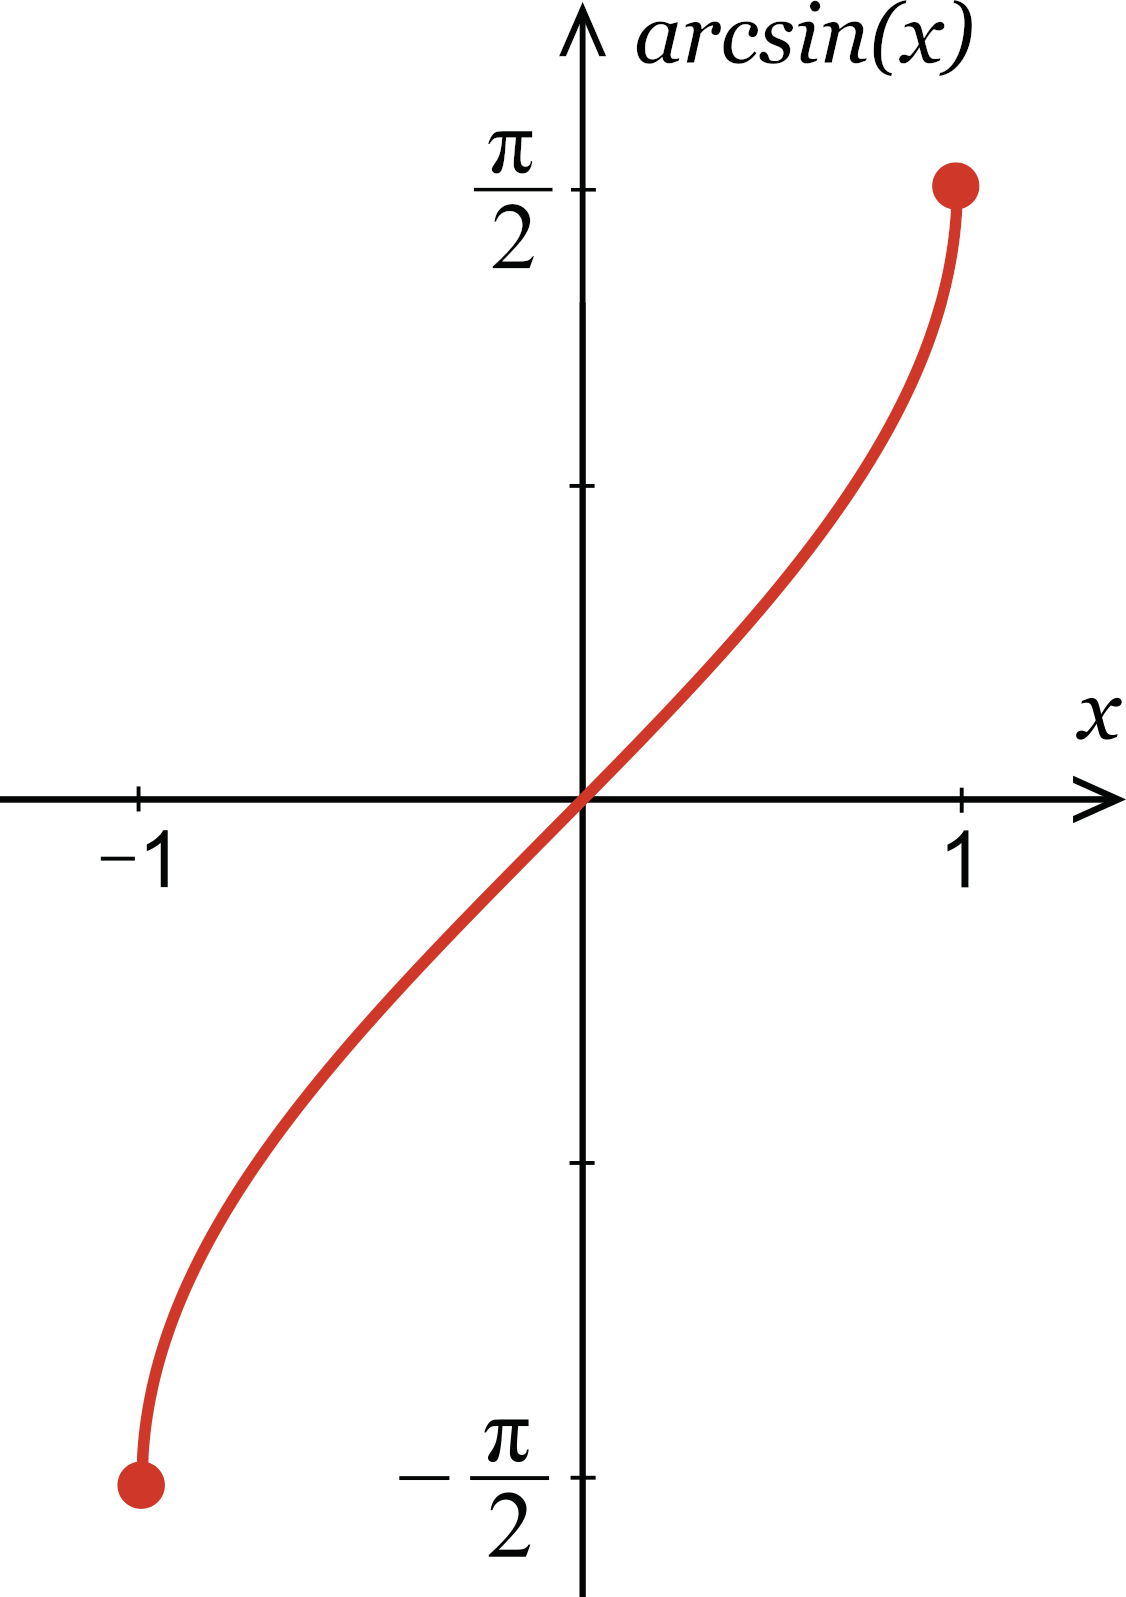 illustration showing the the range of possible values for arcsin from the coordinate (-1, -pi/2) to (1, pi/2)